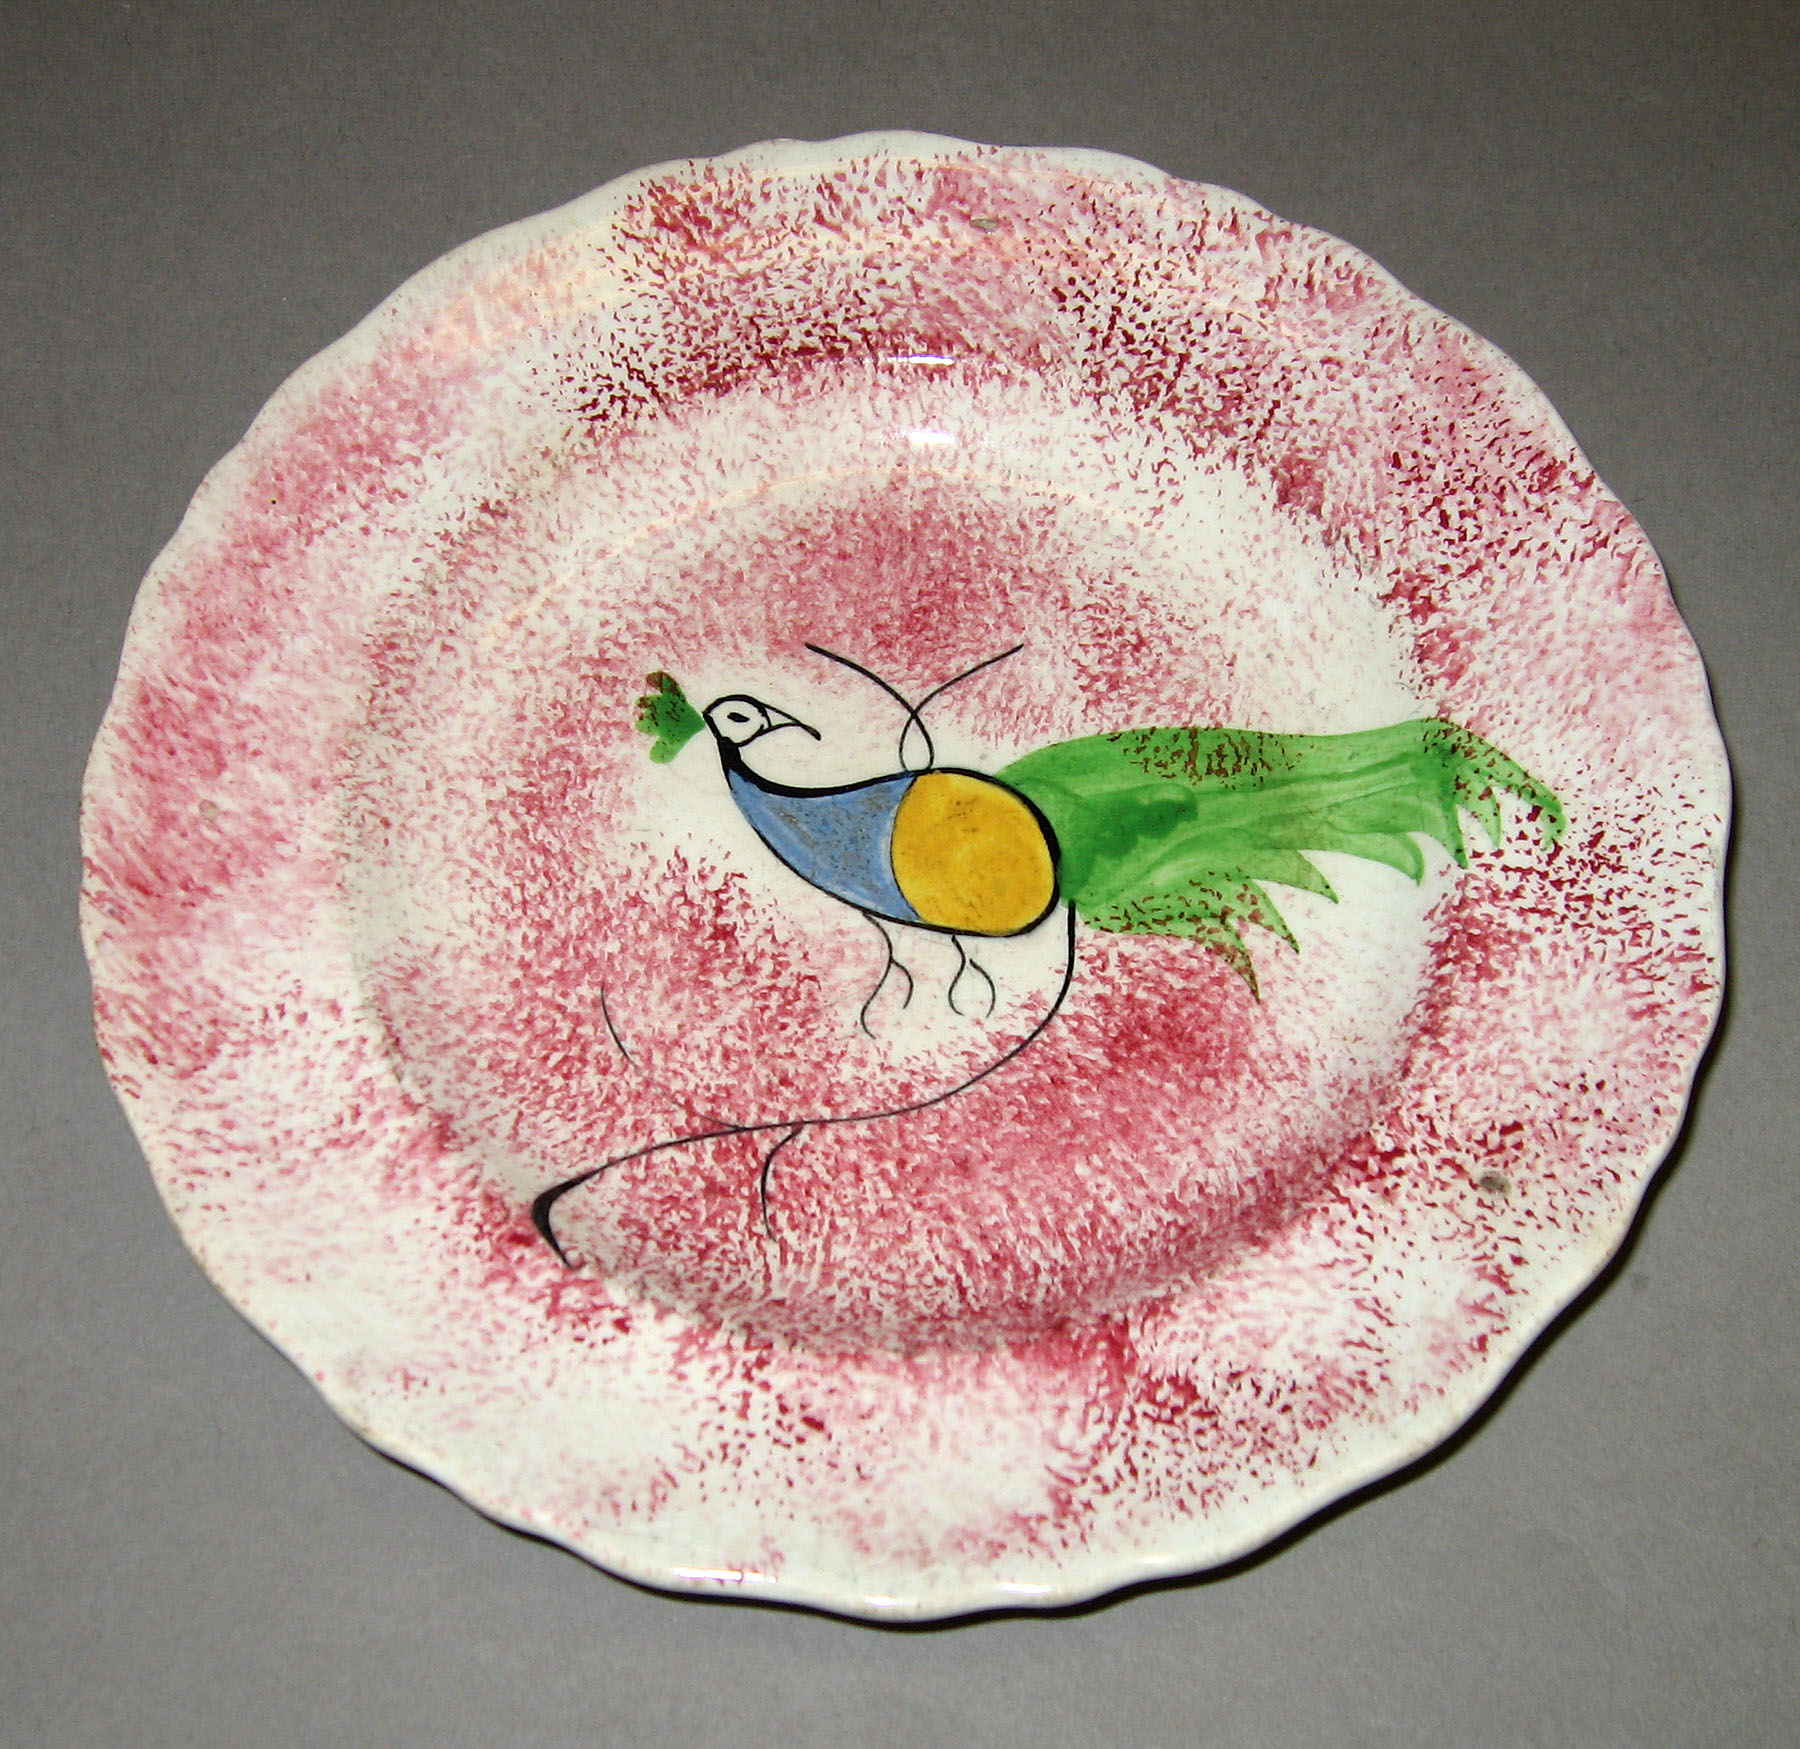 1965.0881.005 Pink spatter plate with peafowl pattern